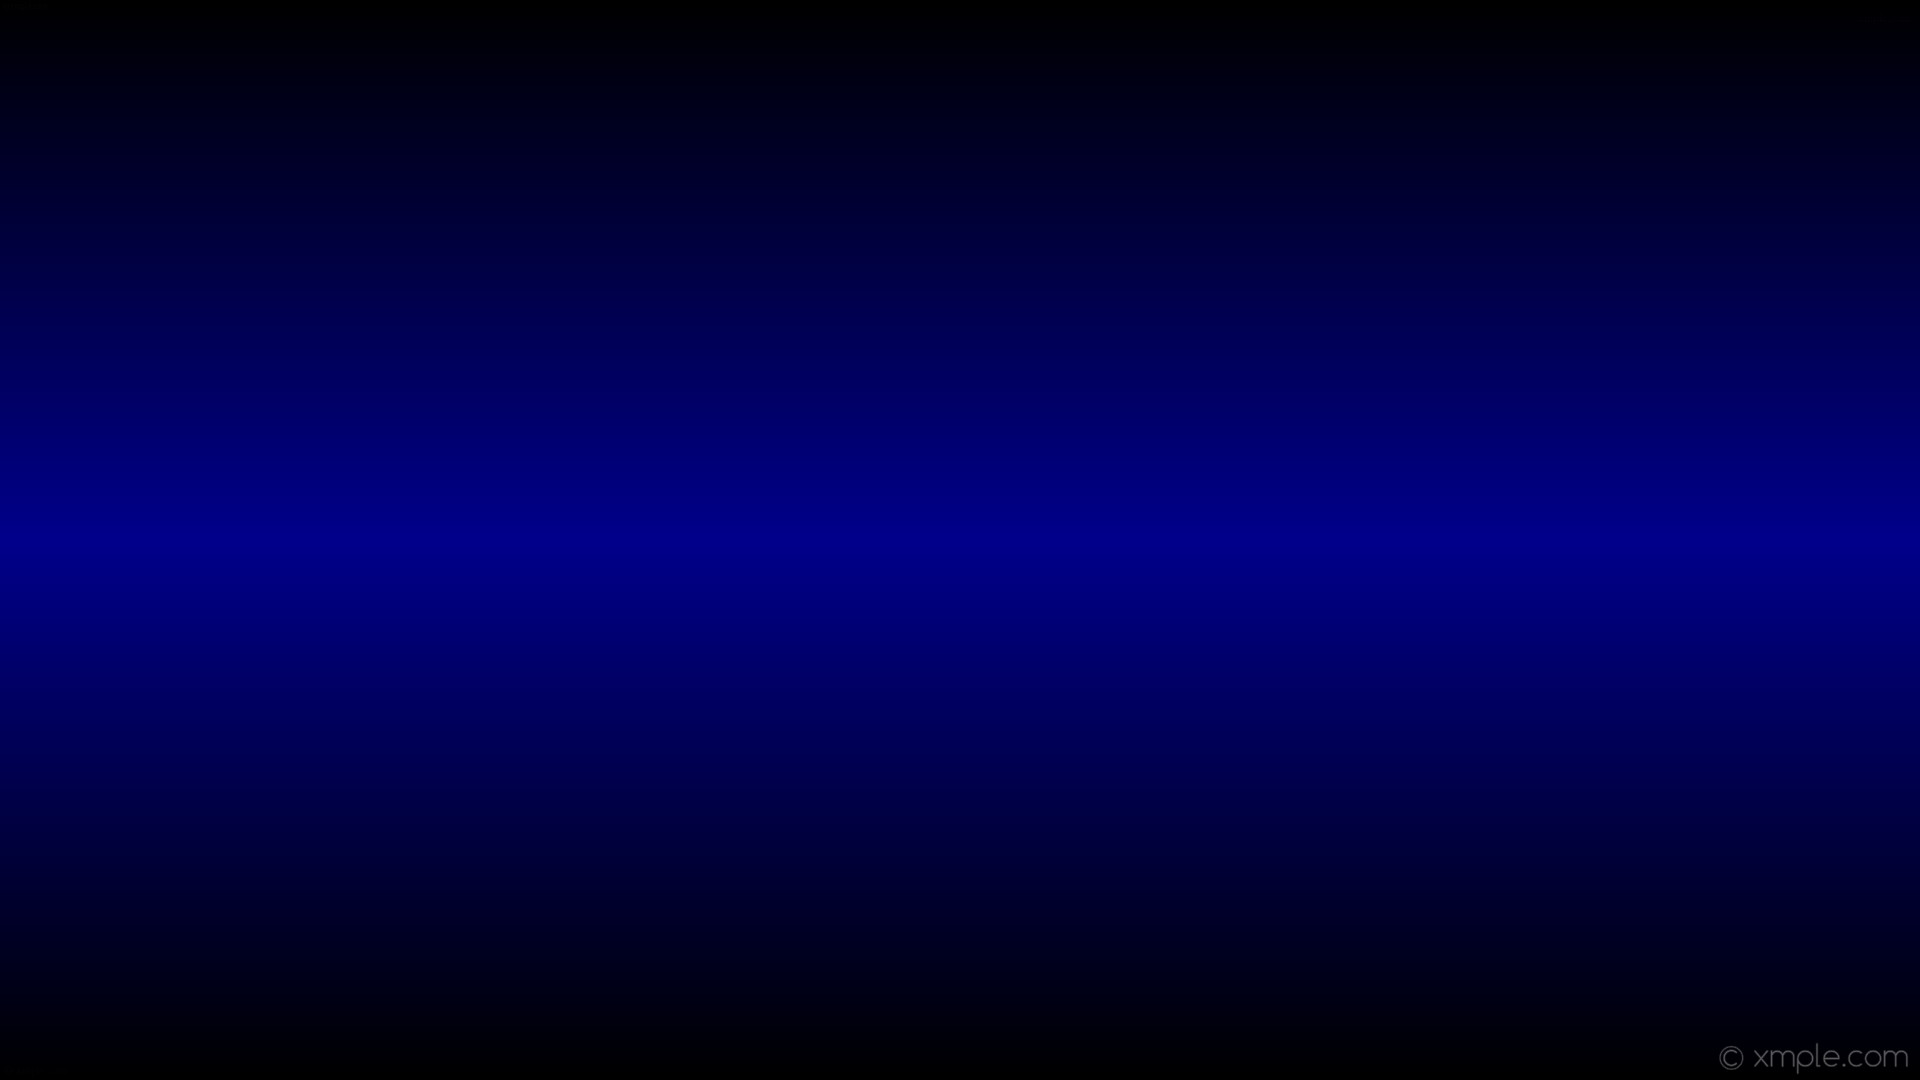 Midnight blue background for Look wallpaper